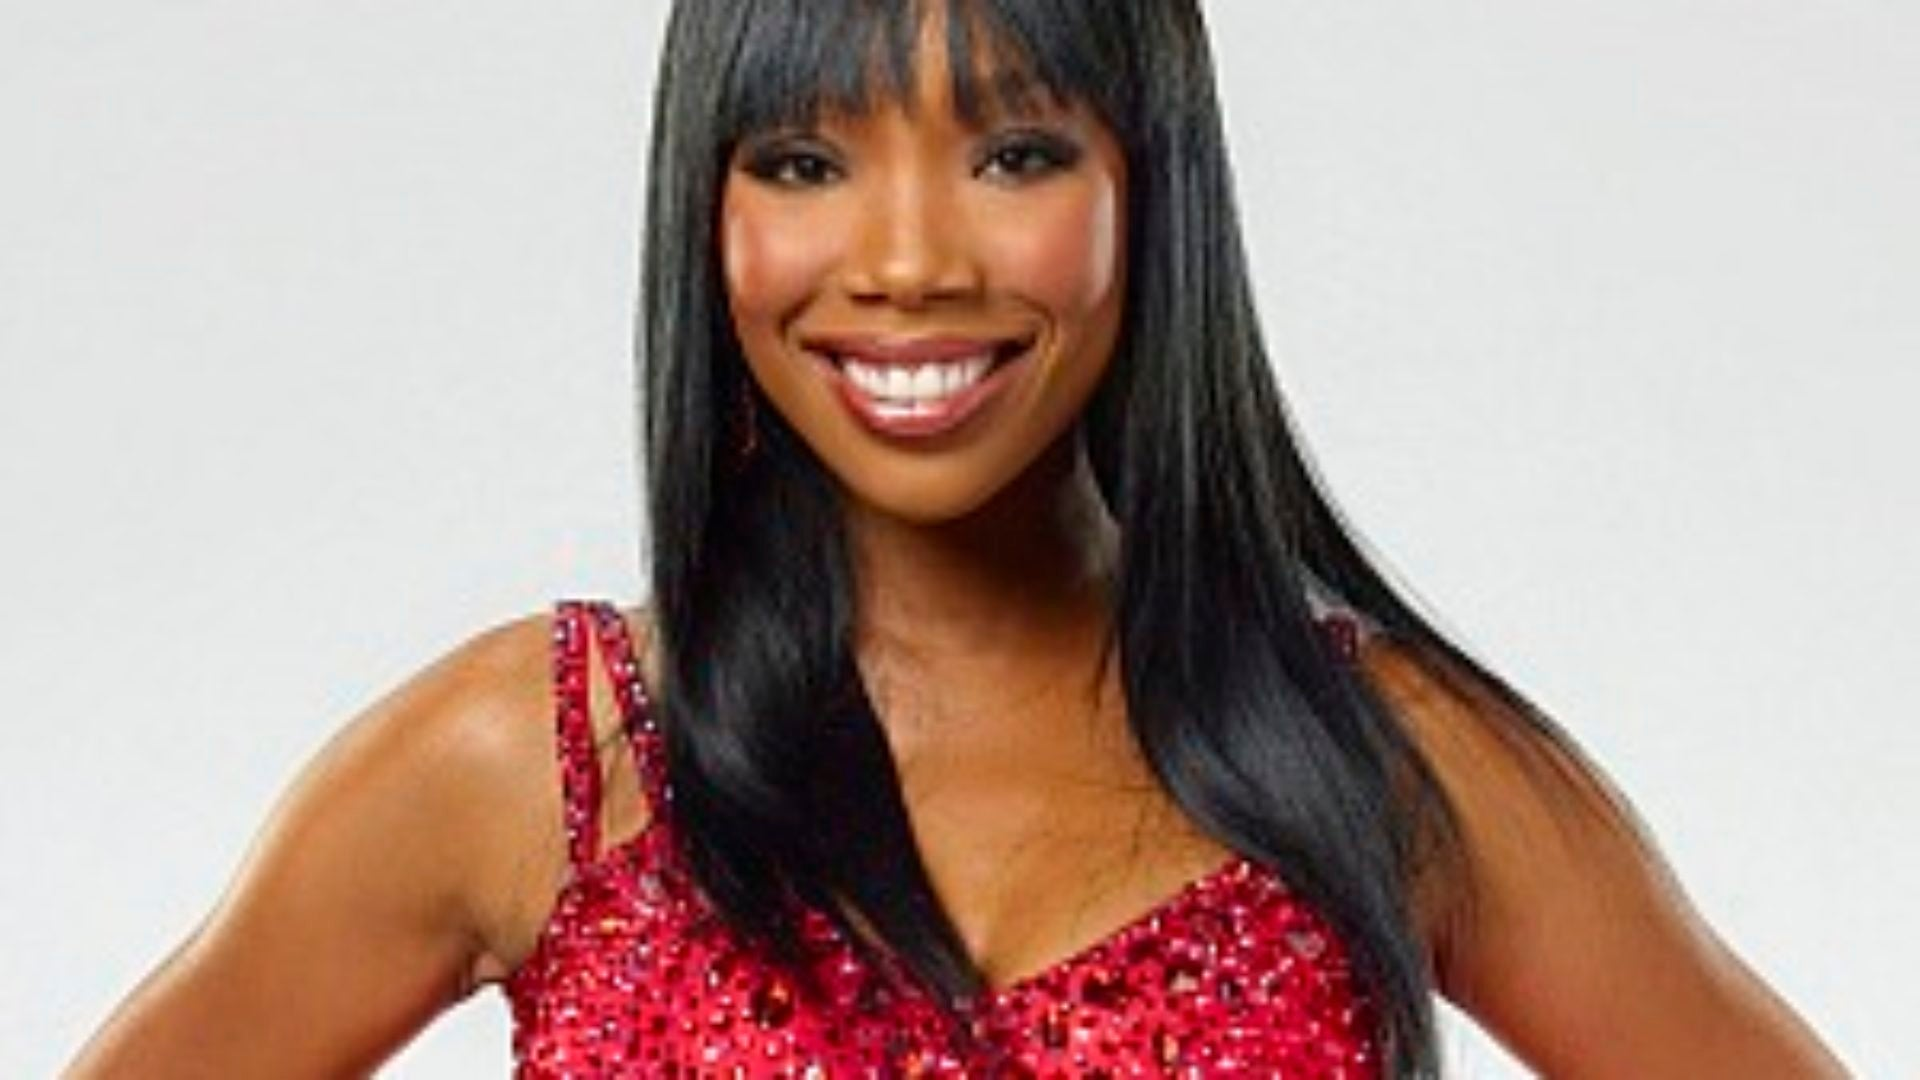 'Dancing with the Stars' Launches Hair Extensions